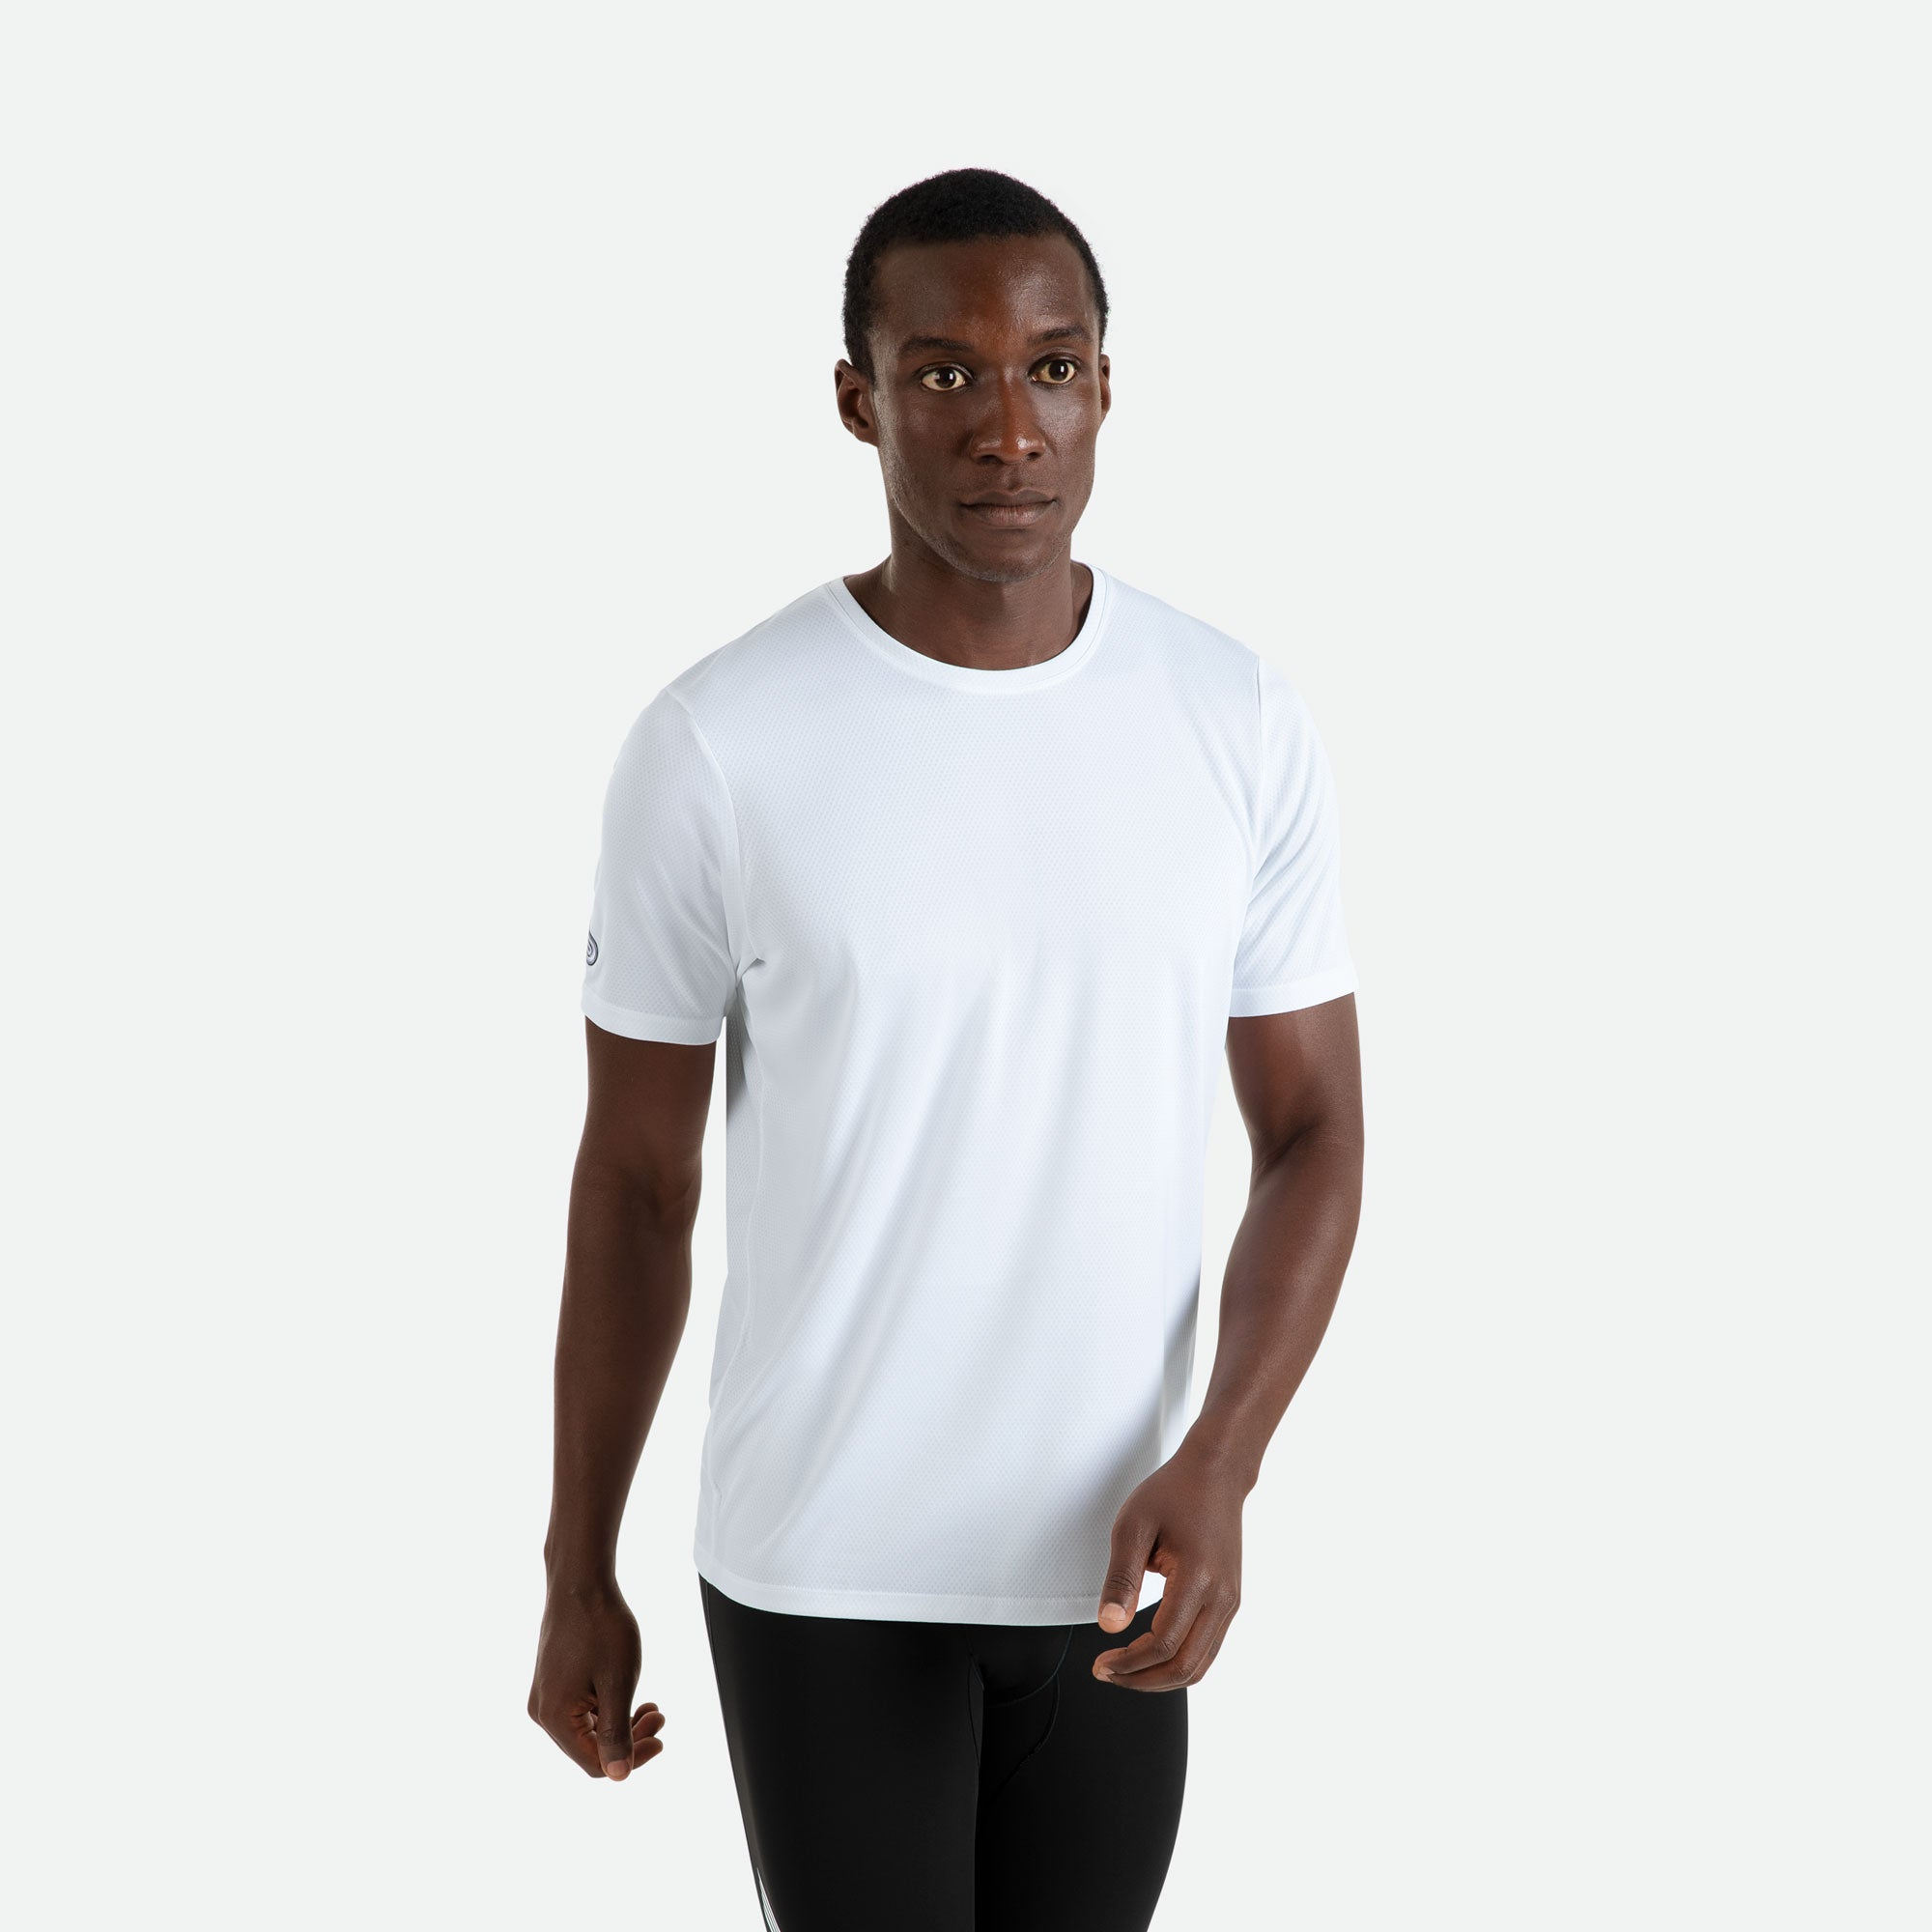 Our Pressio men's white Hāpai short sleeve t-shirt features EcoTECH MF fabric which has dual filament recycled polyester yarns from Unifi for superior moisture control to keep you dry.